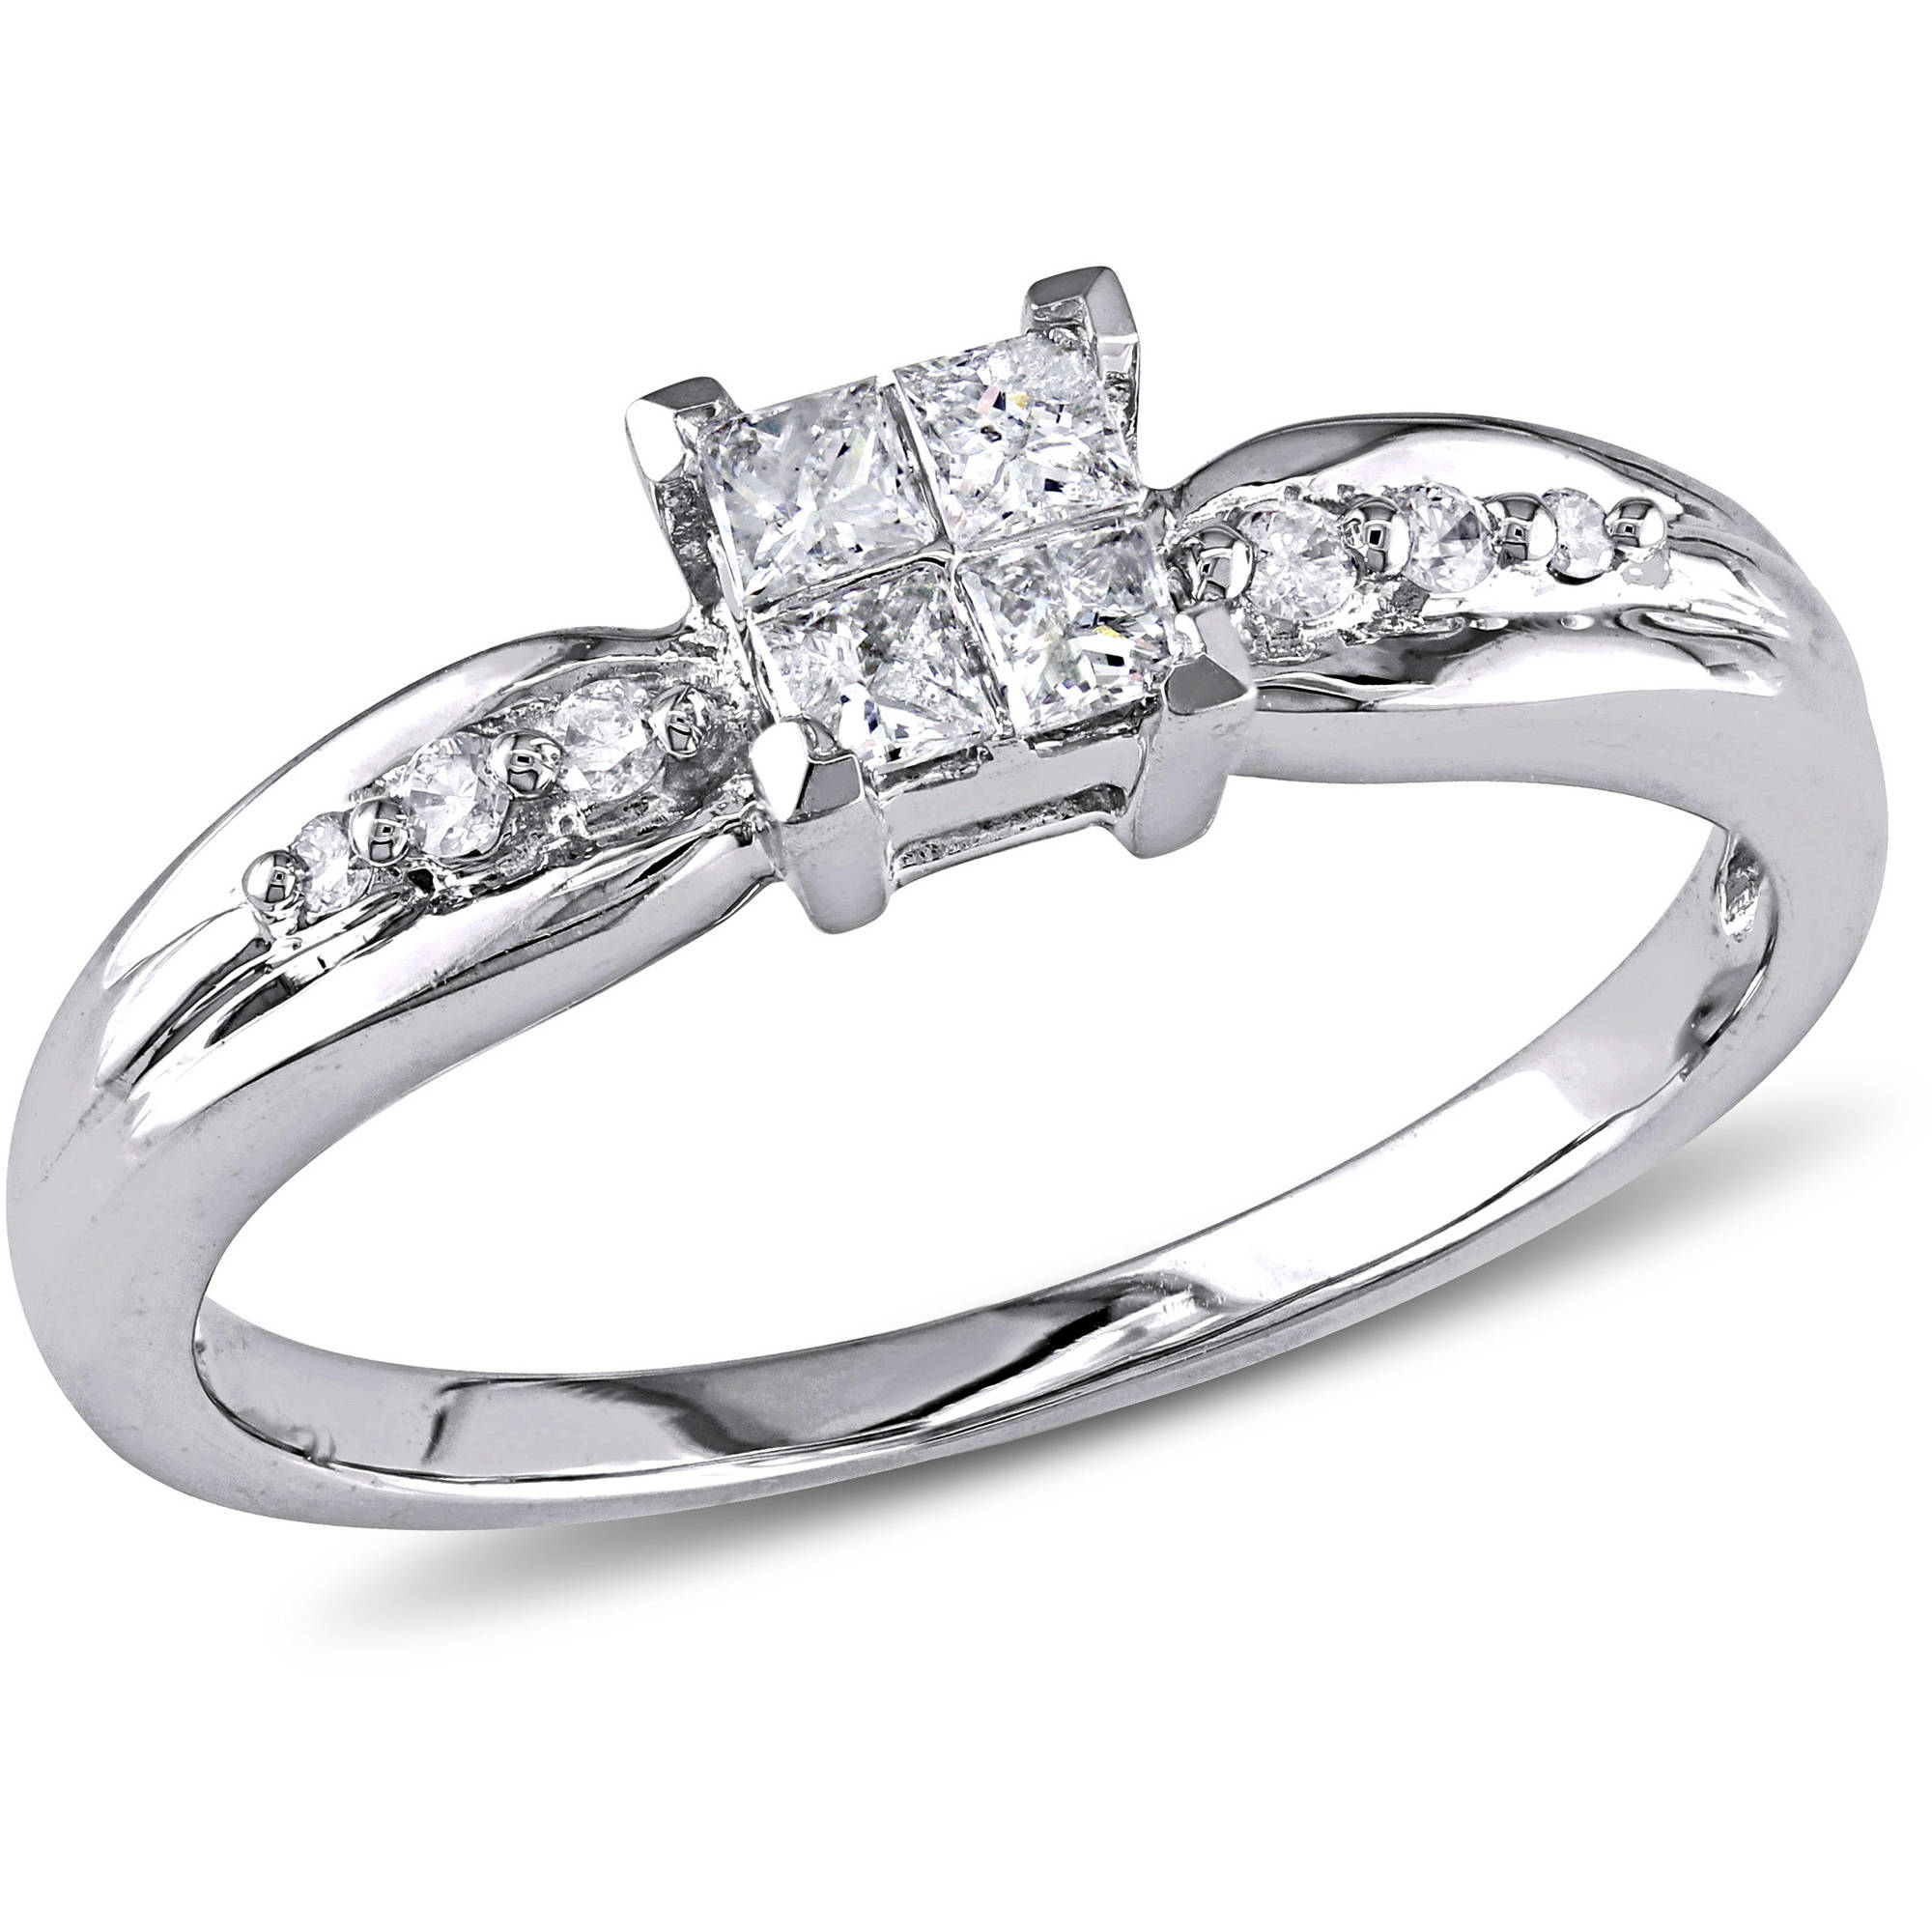 1/4 Carat T.W. Princess and Round-Cut Diamond Engagement Ring in 10k White Gold